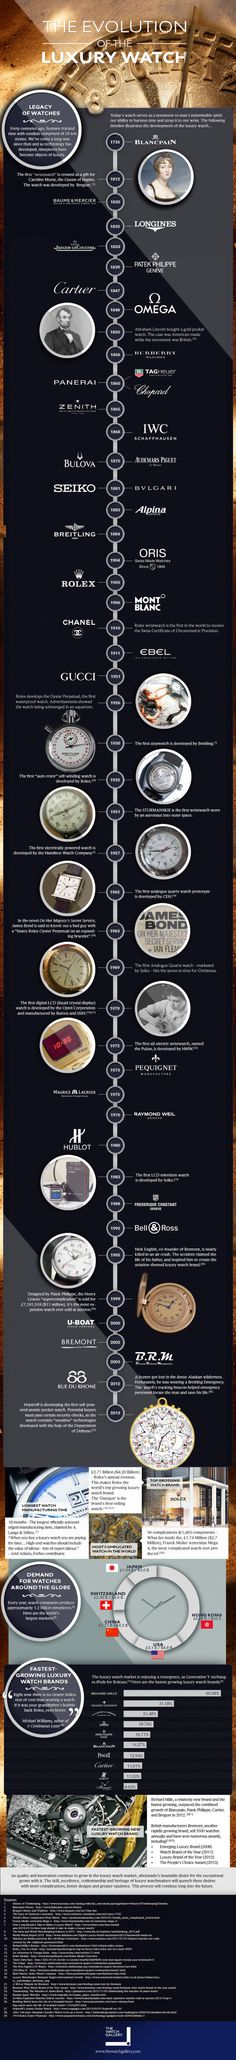 Evolution of the Luxury Watch [Inforaphic] Richard Mille might be a relatively new brand in the universe of luxury watches, but its growth in 2012 surpassed the combined values of four other high-end brands like the giant Cartier. However, nu… Dream Watches, Fine Watches, Luxury Watches, Cool Watches, Watches For Men, Female Watches, Men's Watches, Nato Armband, Herren Chronograph